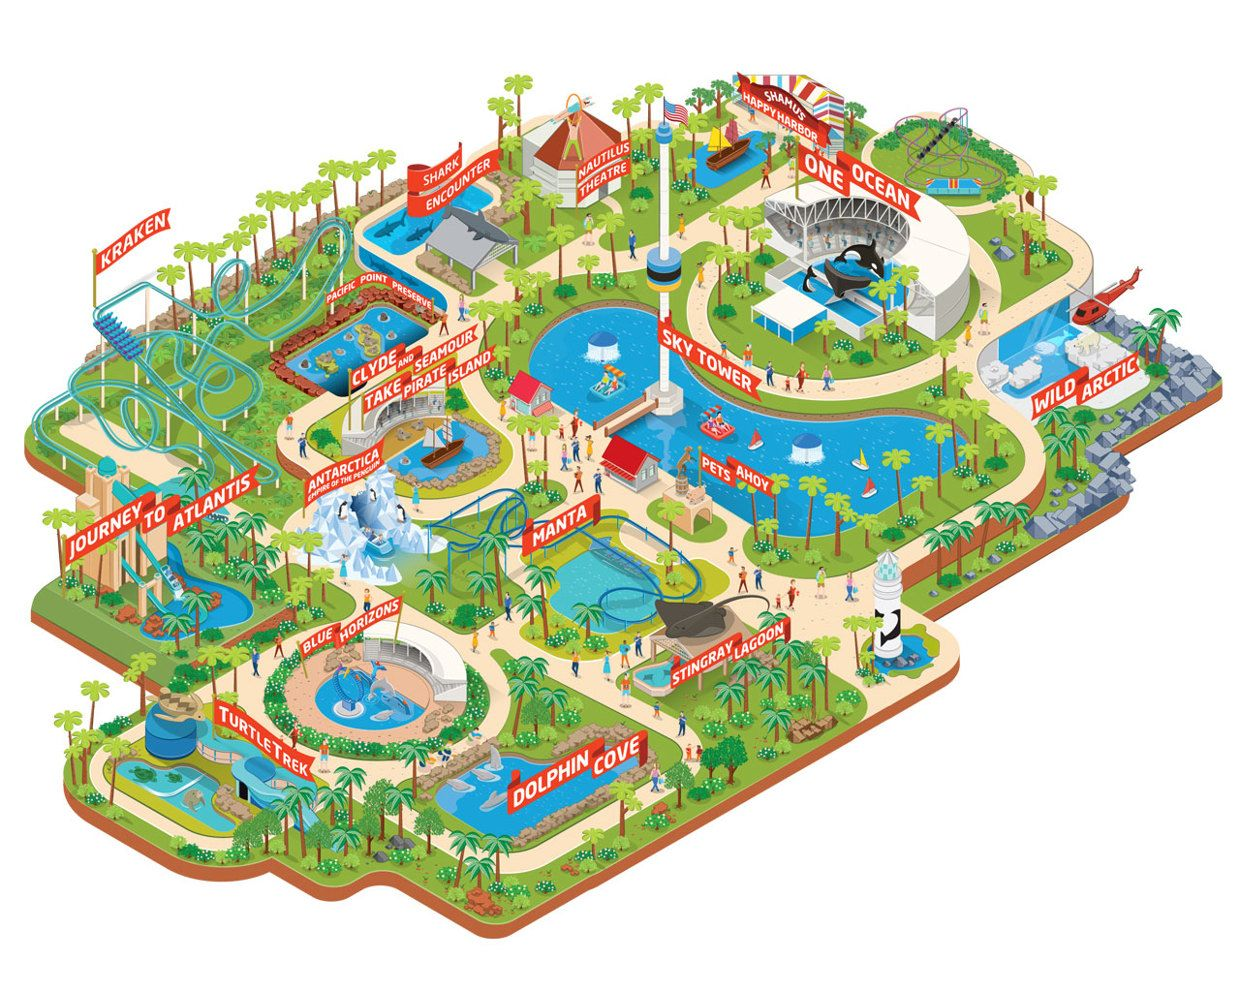 Pin by Society on Design we like | Sea world, Theme park map ...